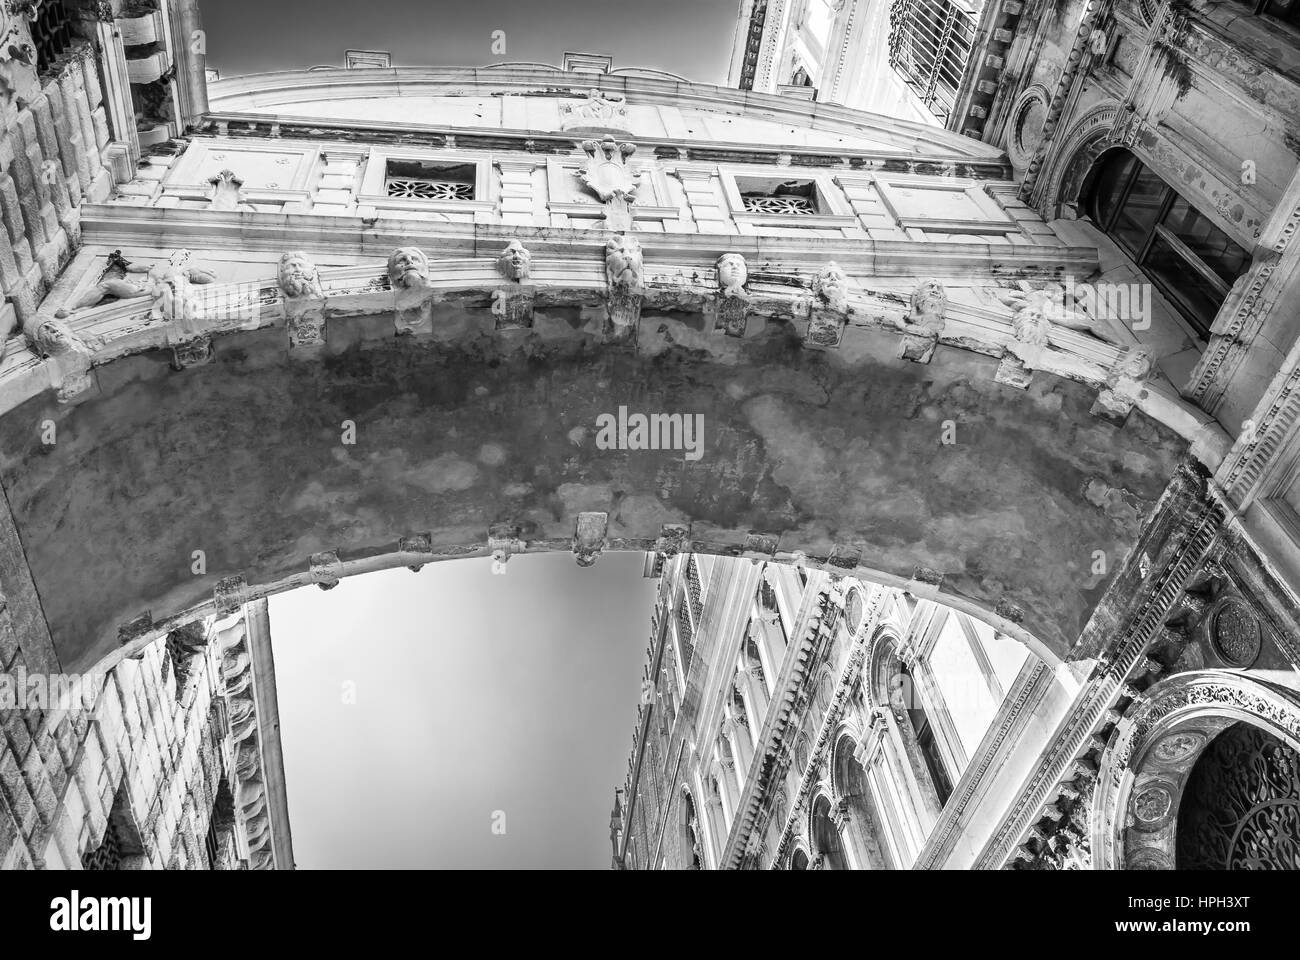 Famous Bridge of Sighs in Venice city, Italy. - Stock Image